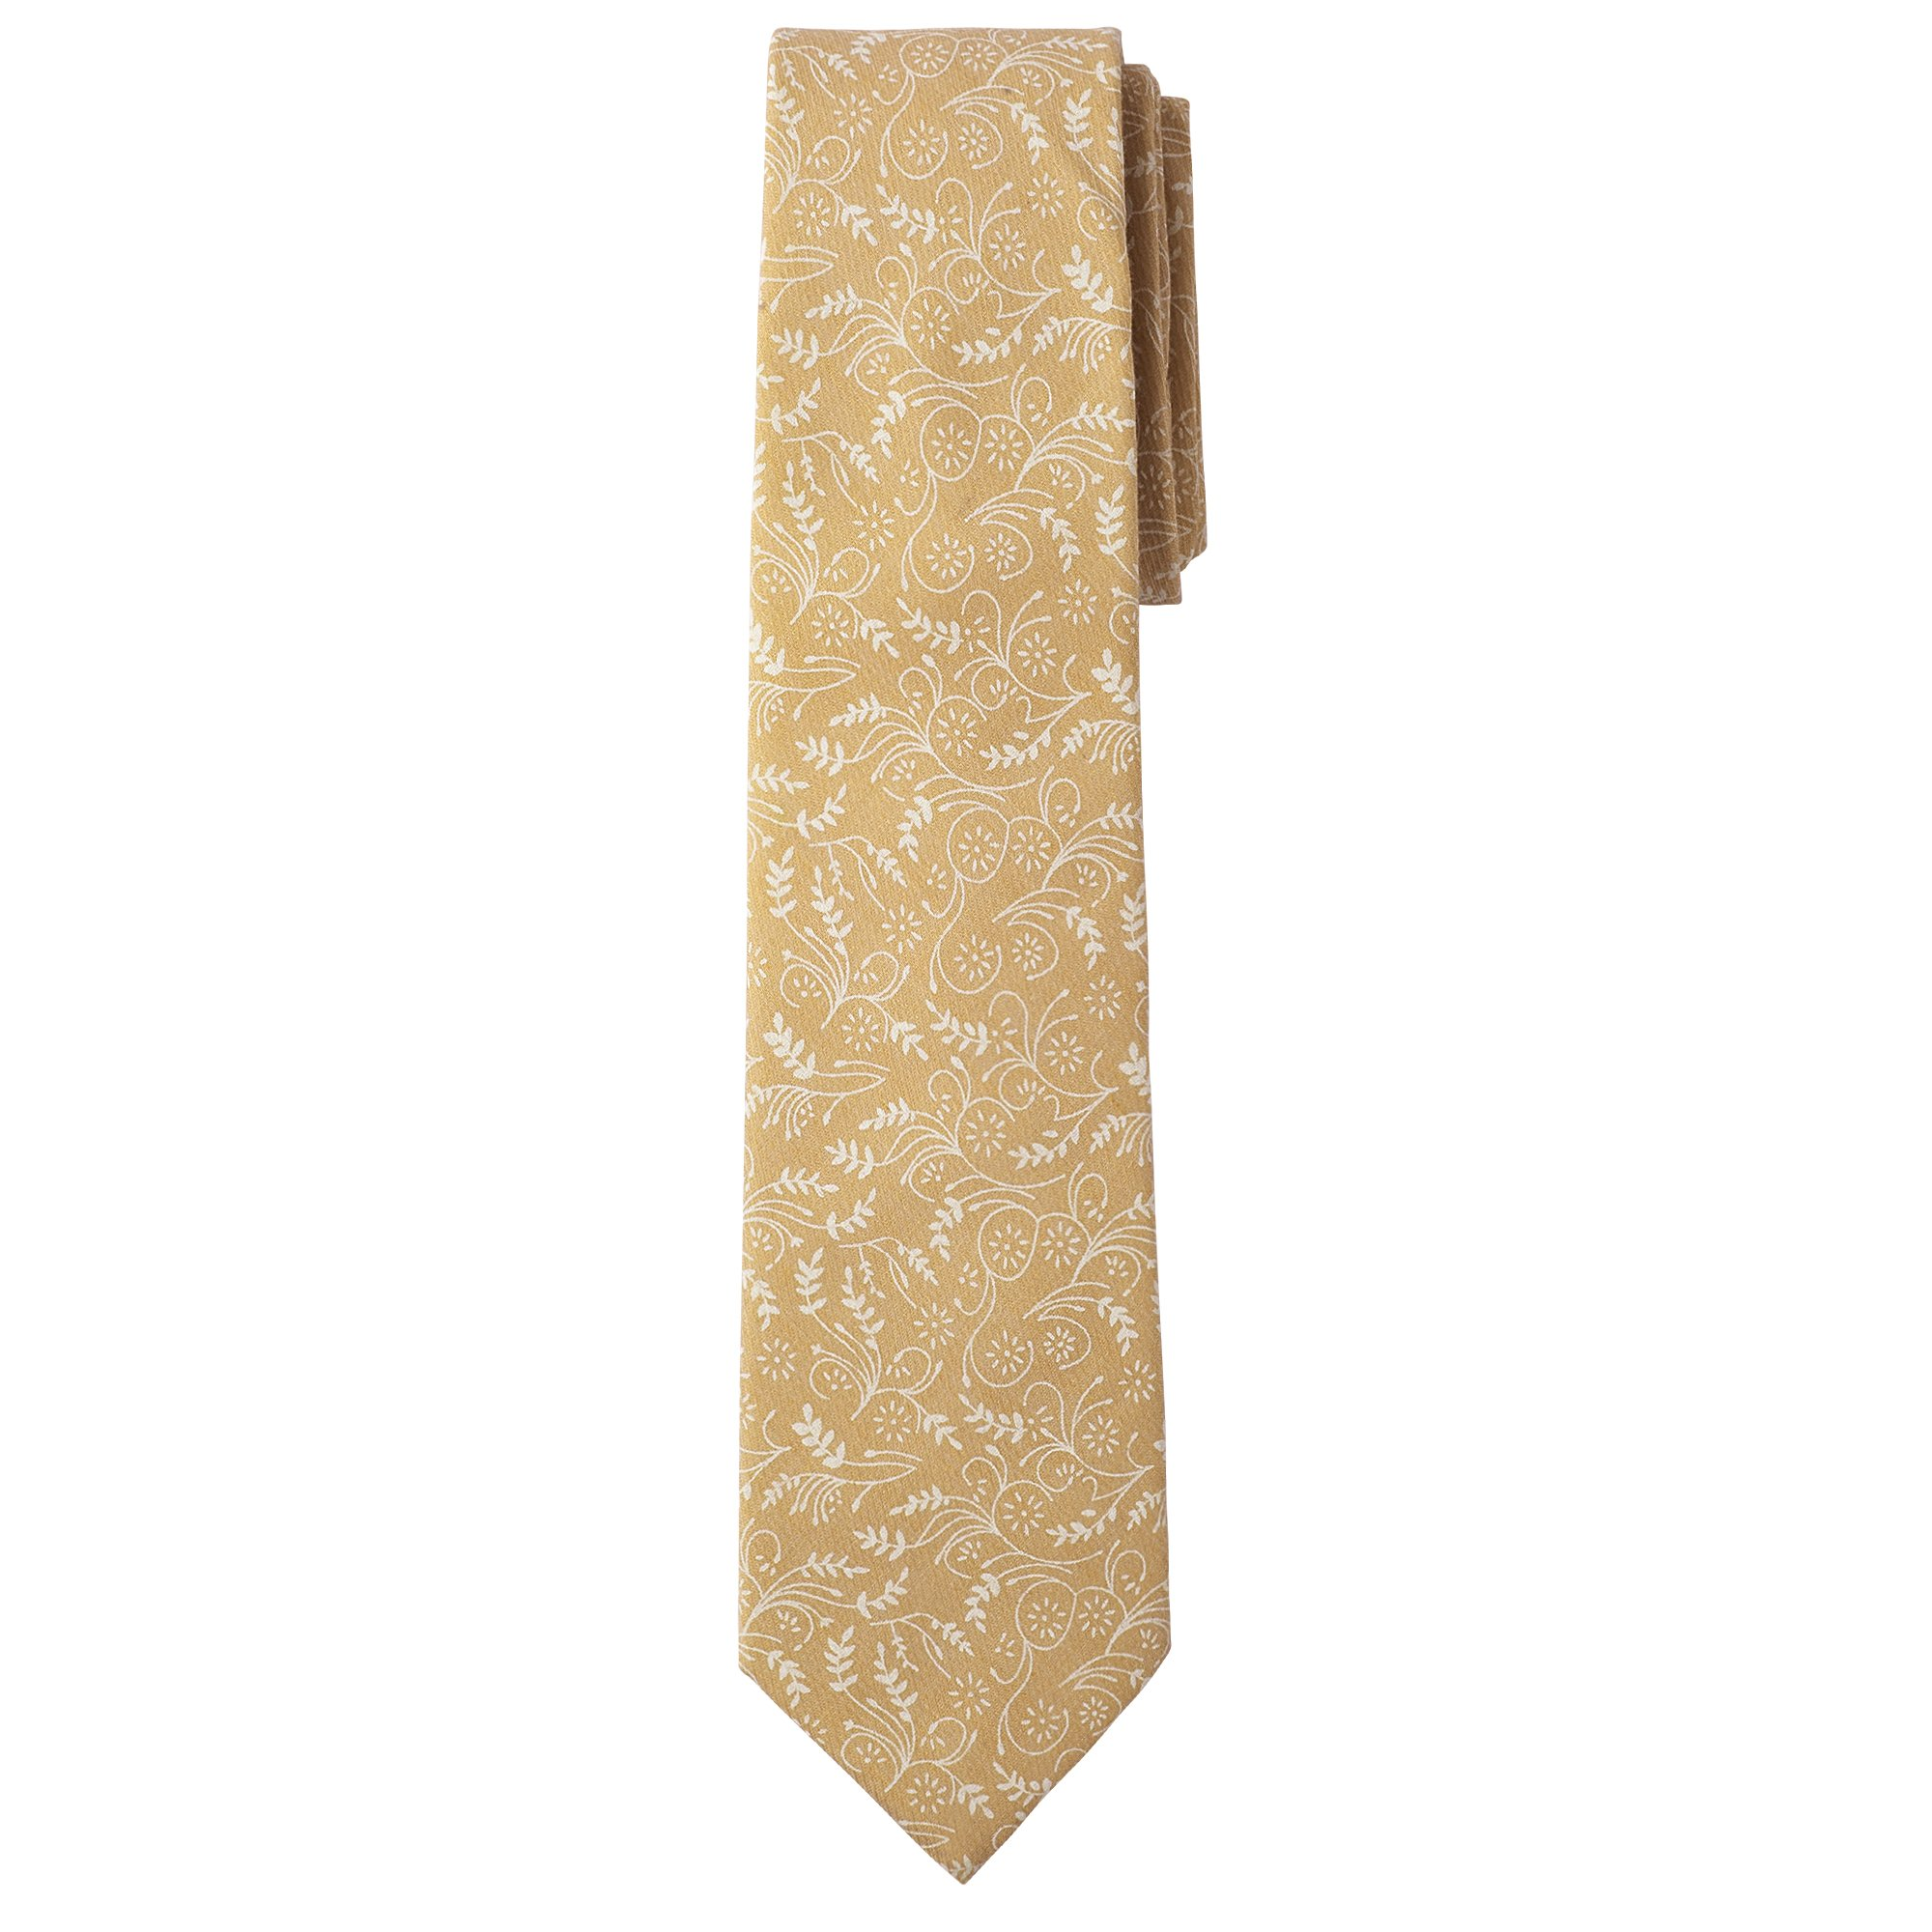 Jacob Alexander Men's Slim Width 2.75'' Floral Neck Tie - Honey